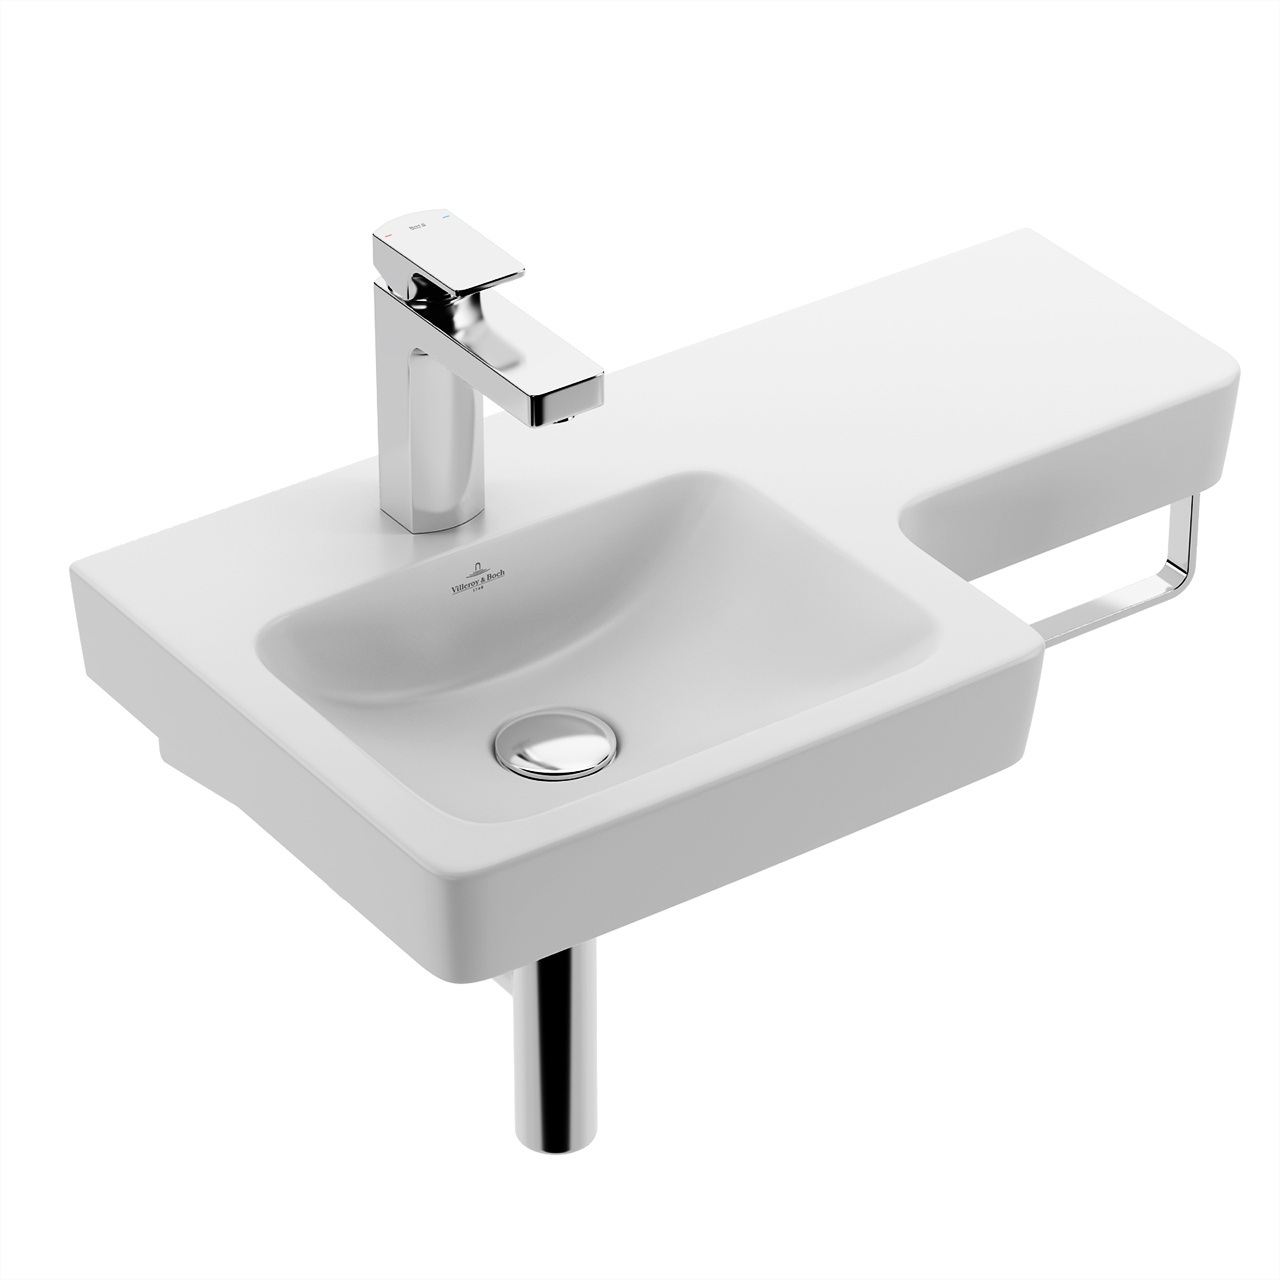 Subway 2.0 Washbasin 630×355 by Villeroy & Boch